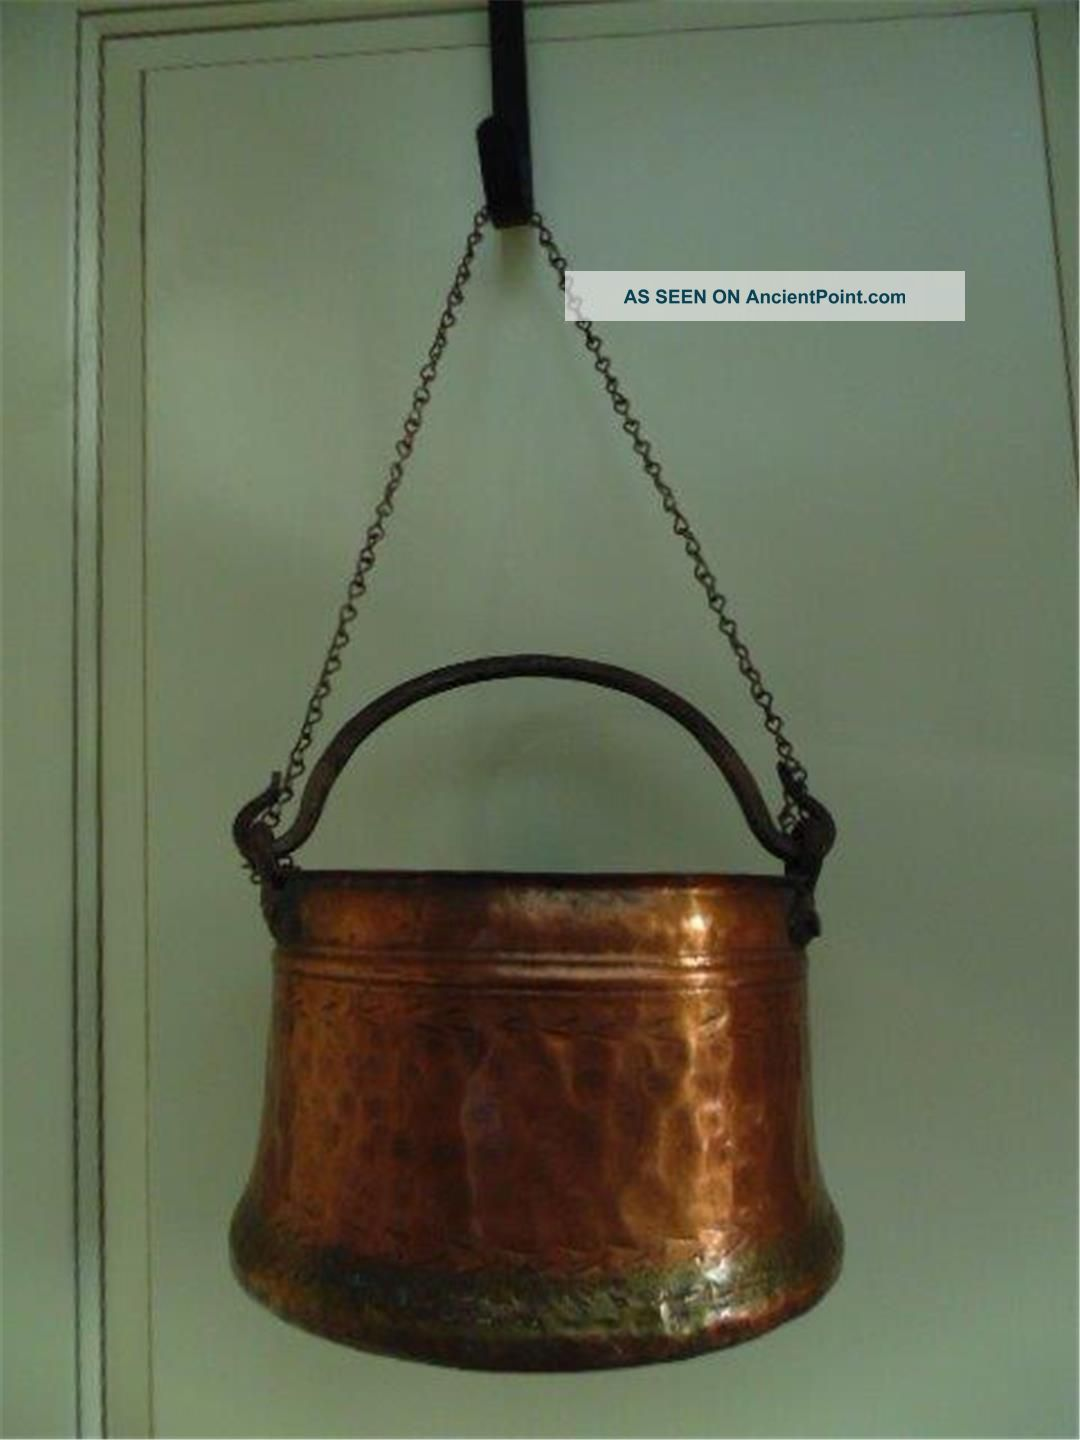 Vtg Antique Hammered Copper Hanging Pot Hand Forged Iron Handle Med 5 Quart Hearth Ware photo